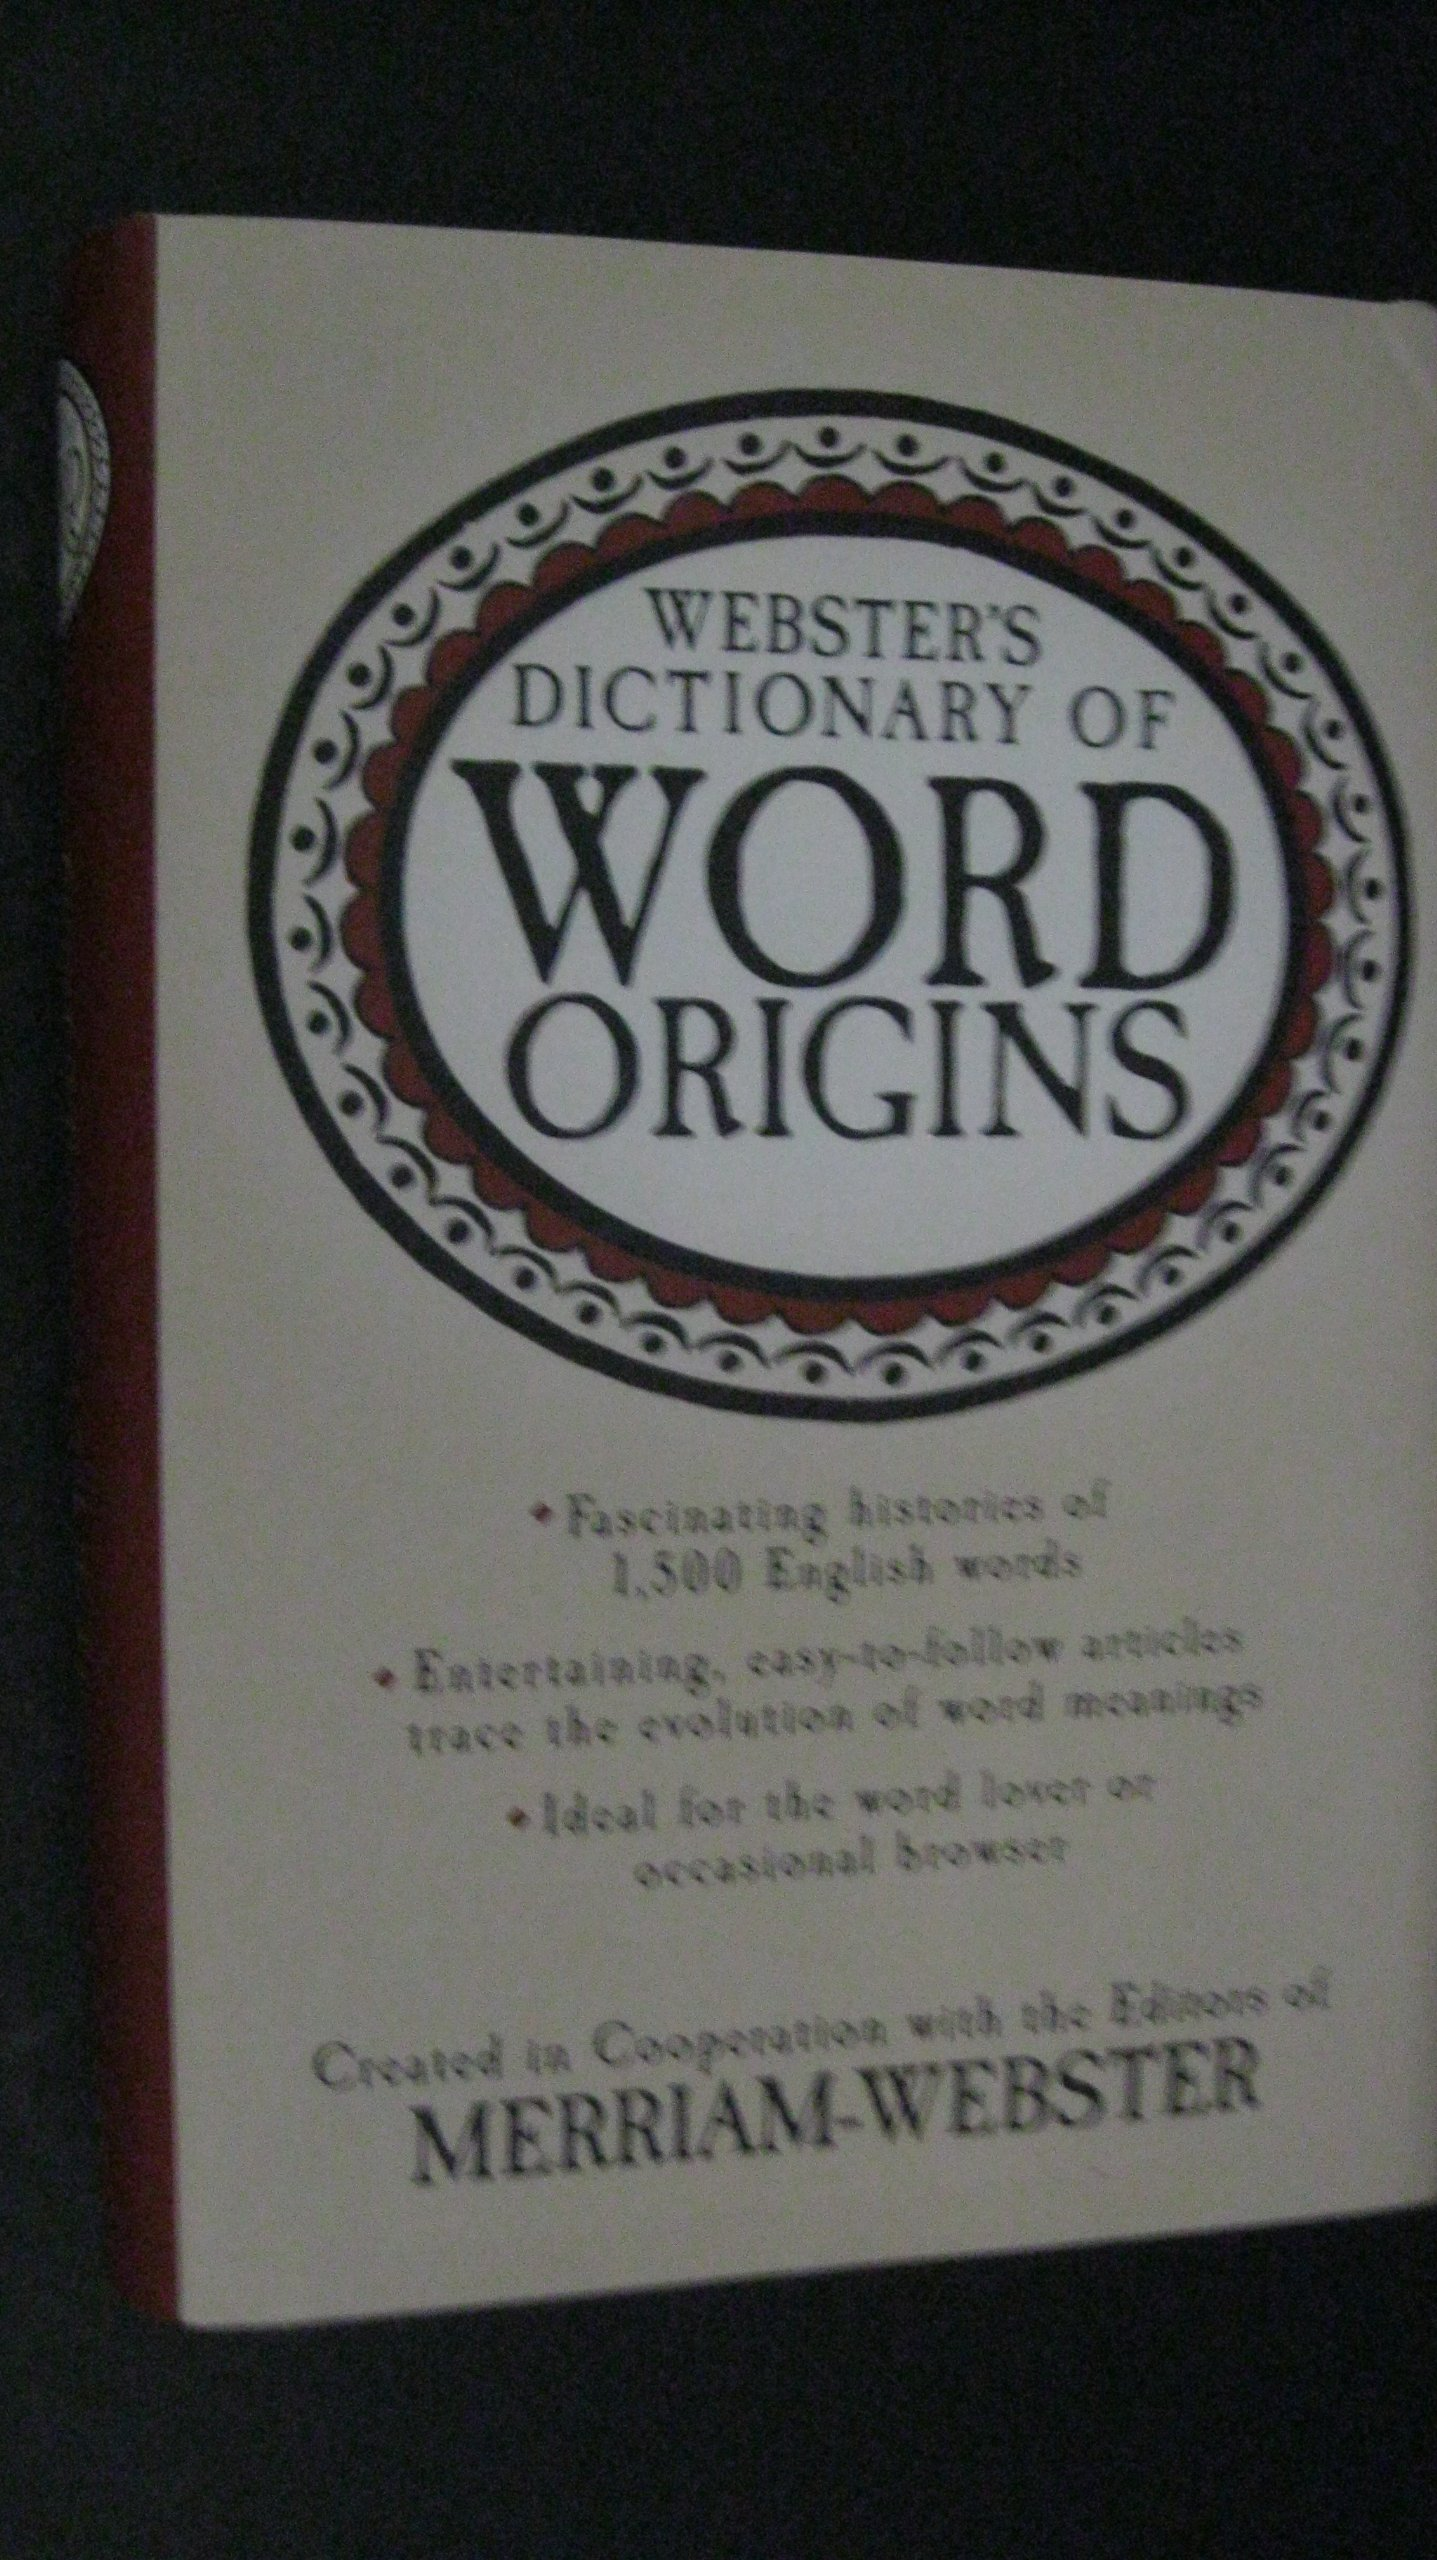 Webster's Dictionary of Word Origins, Merriam-Webster